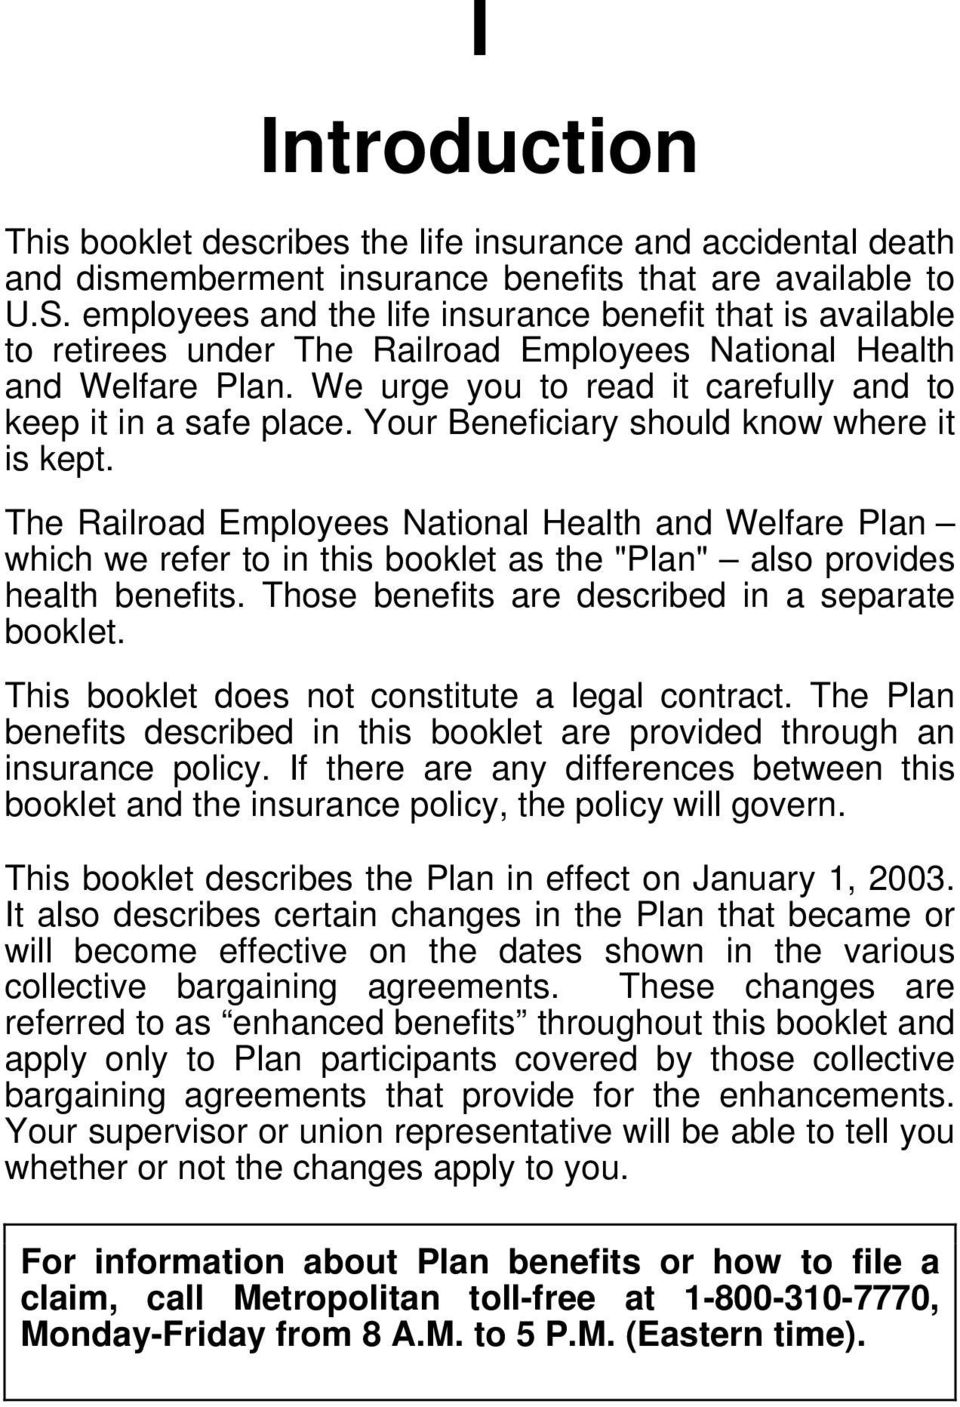 "Your Beneficiary should know where it is kept. The Railroad Employees National Health and Welfare Plan which we refer to in this booklet as the ""Plan"" also provides health benefits."